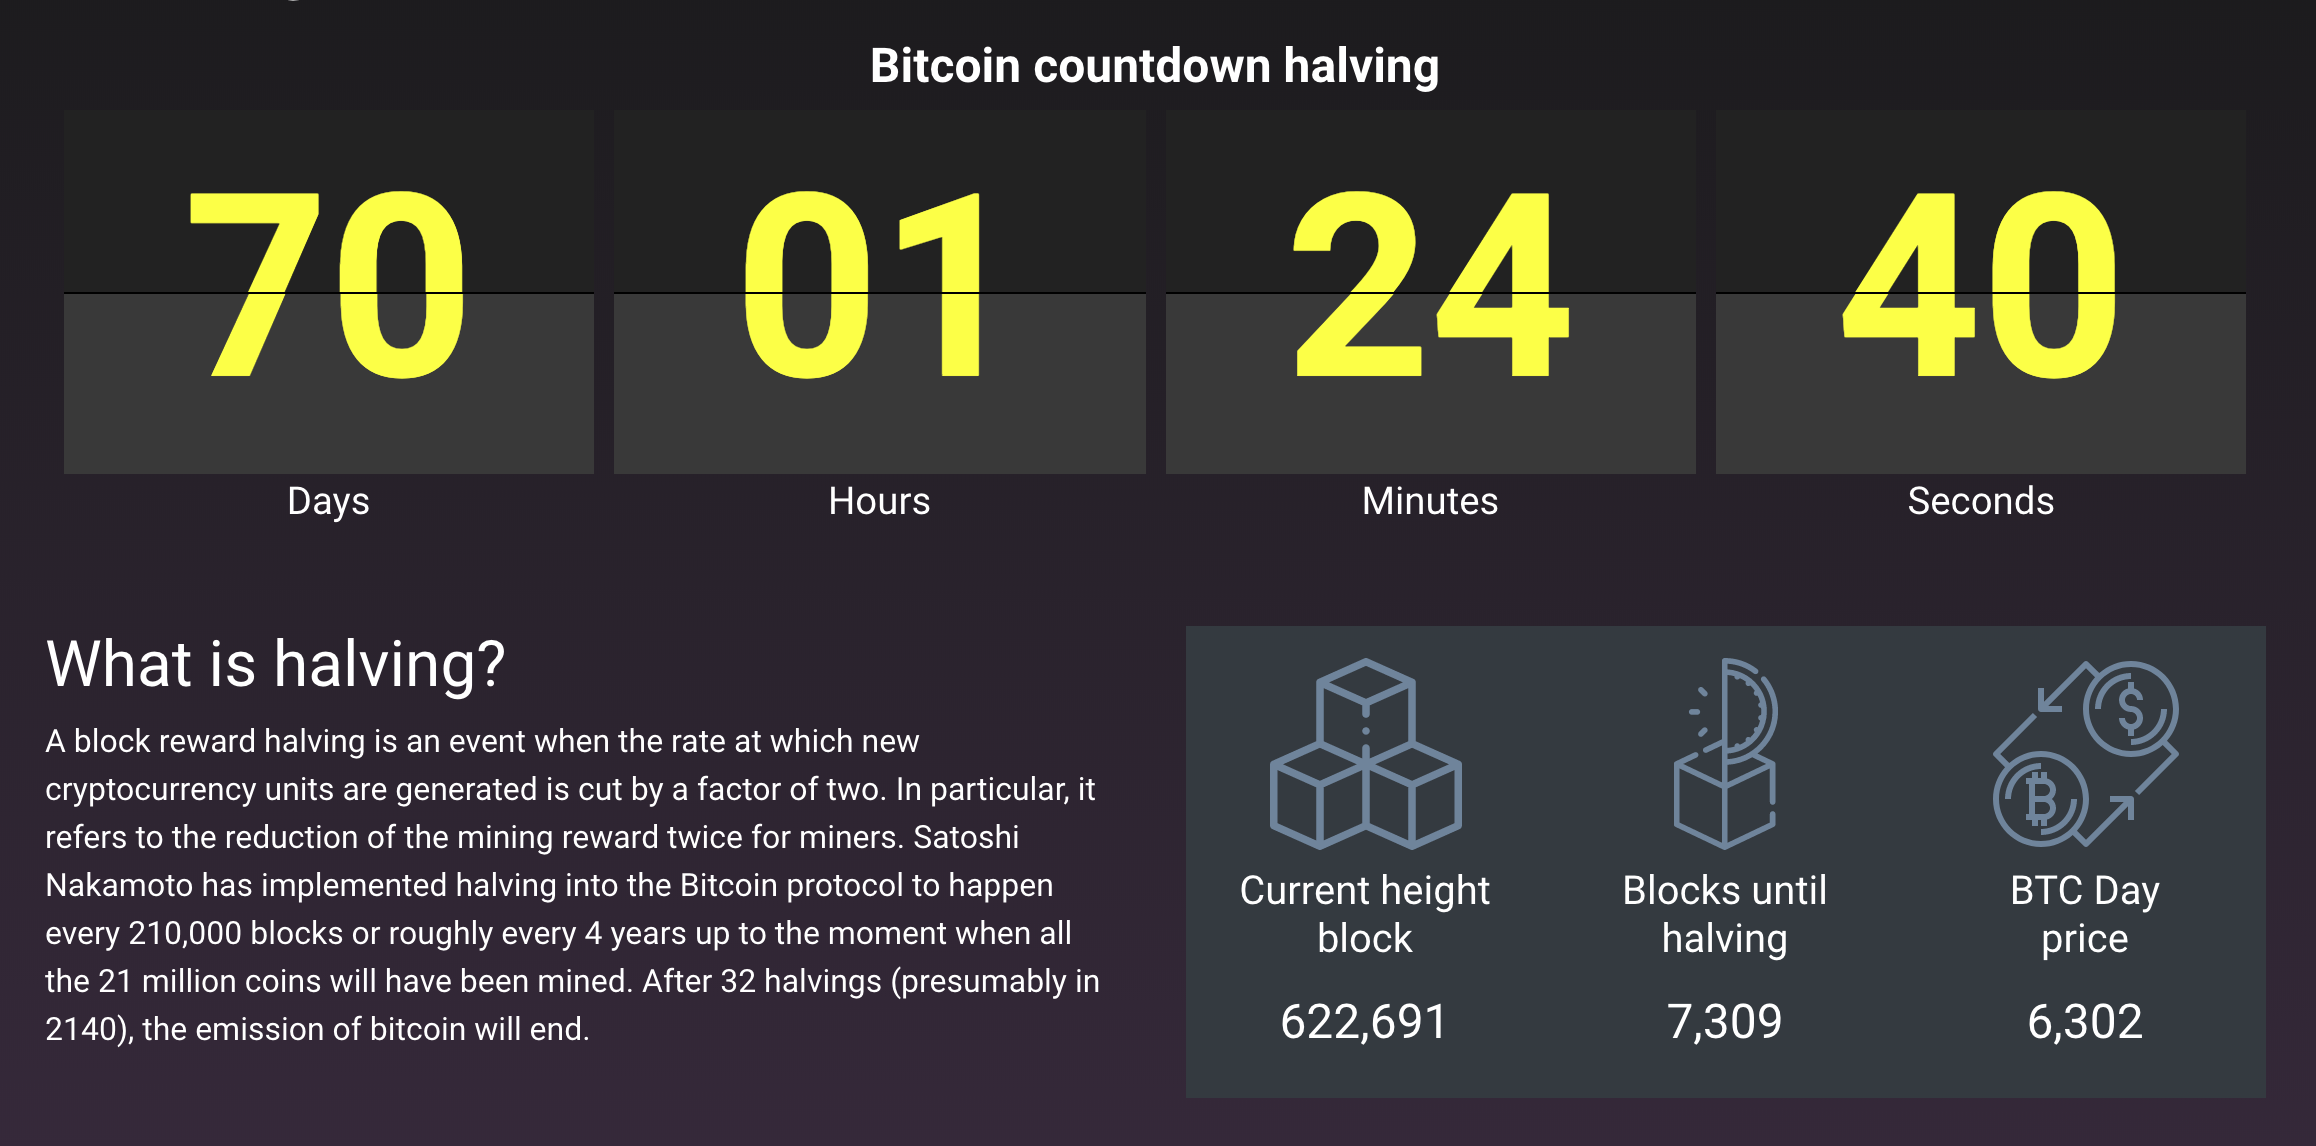 Time left to BTC halving